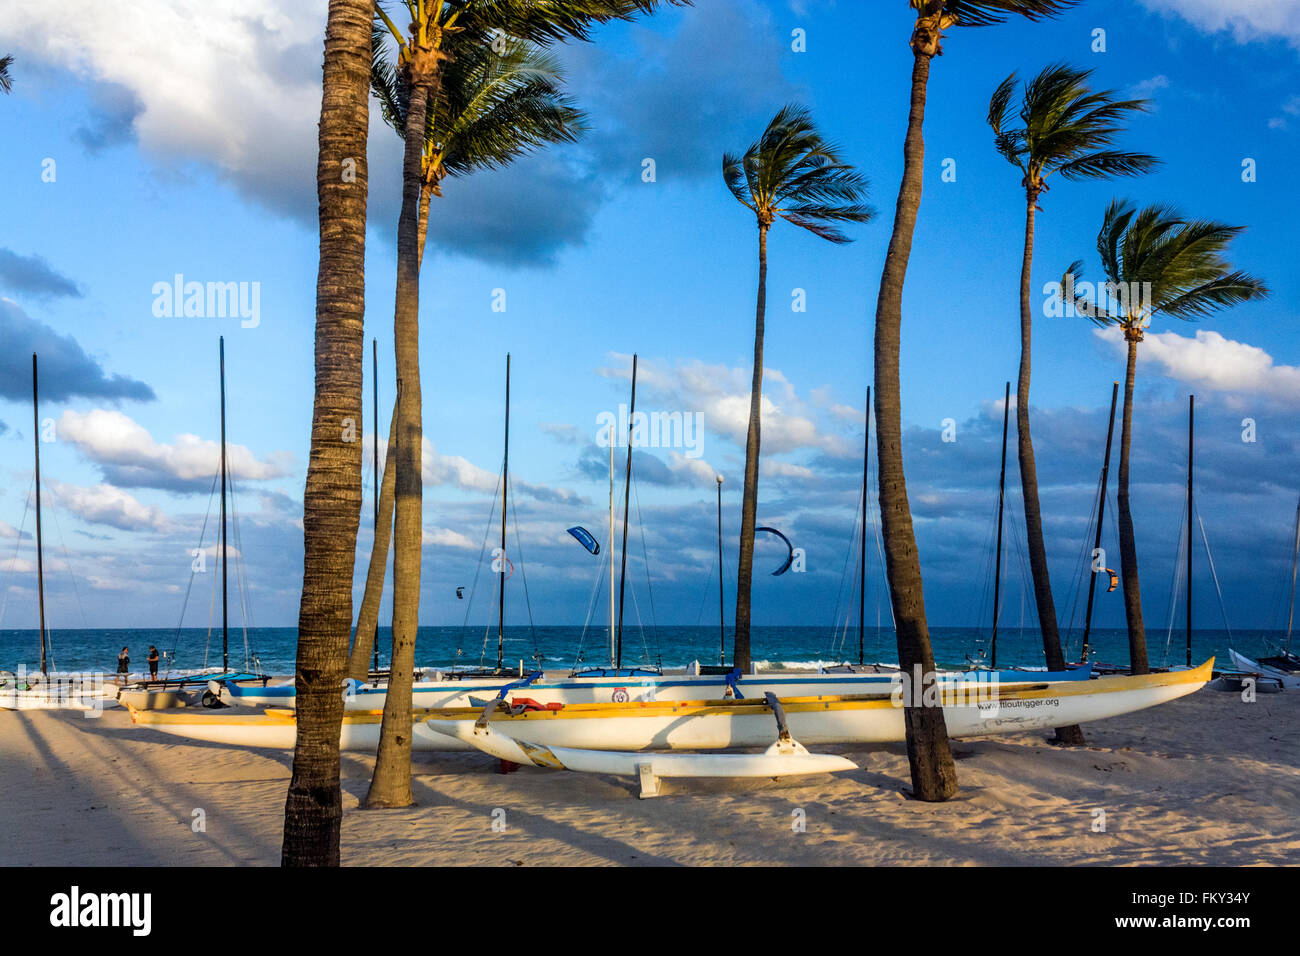 Canoes on the beach, Fort Lauderdale Stock Photo